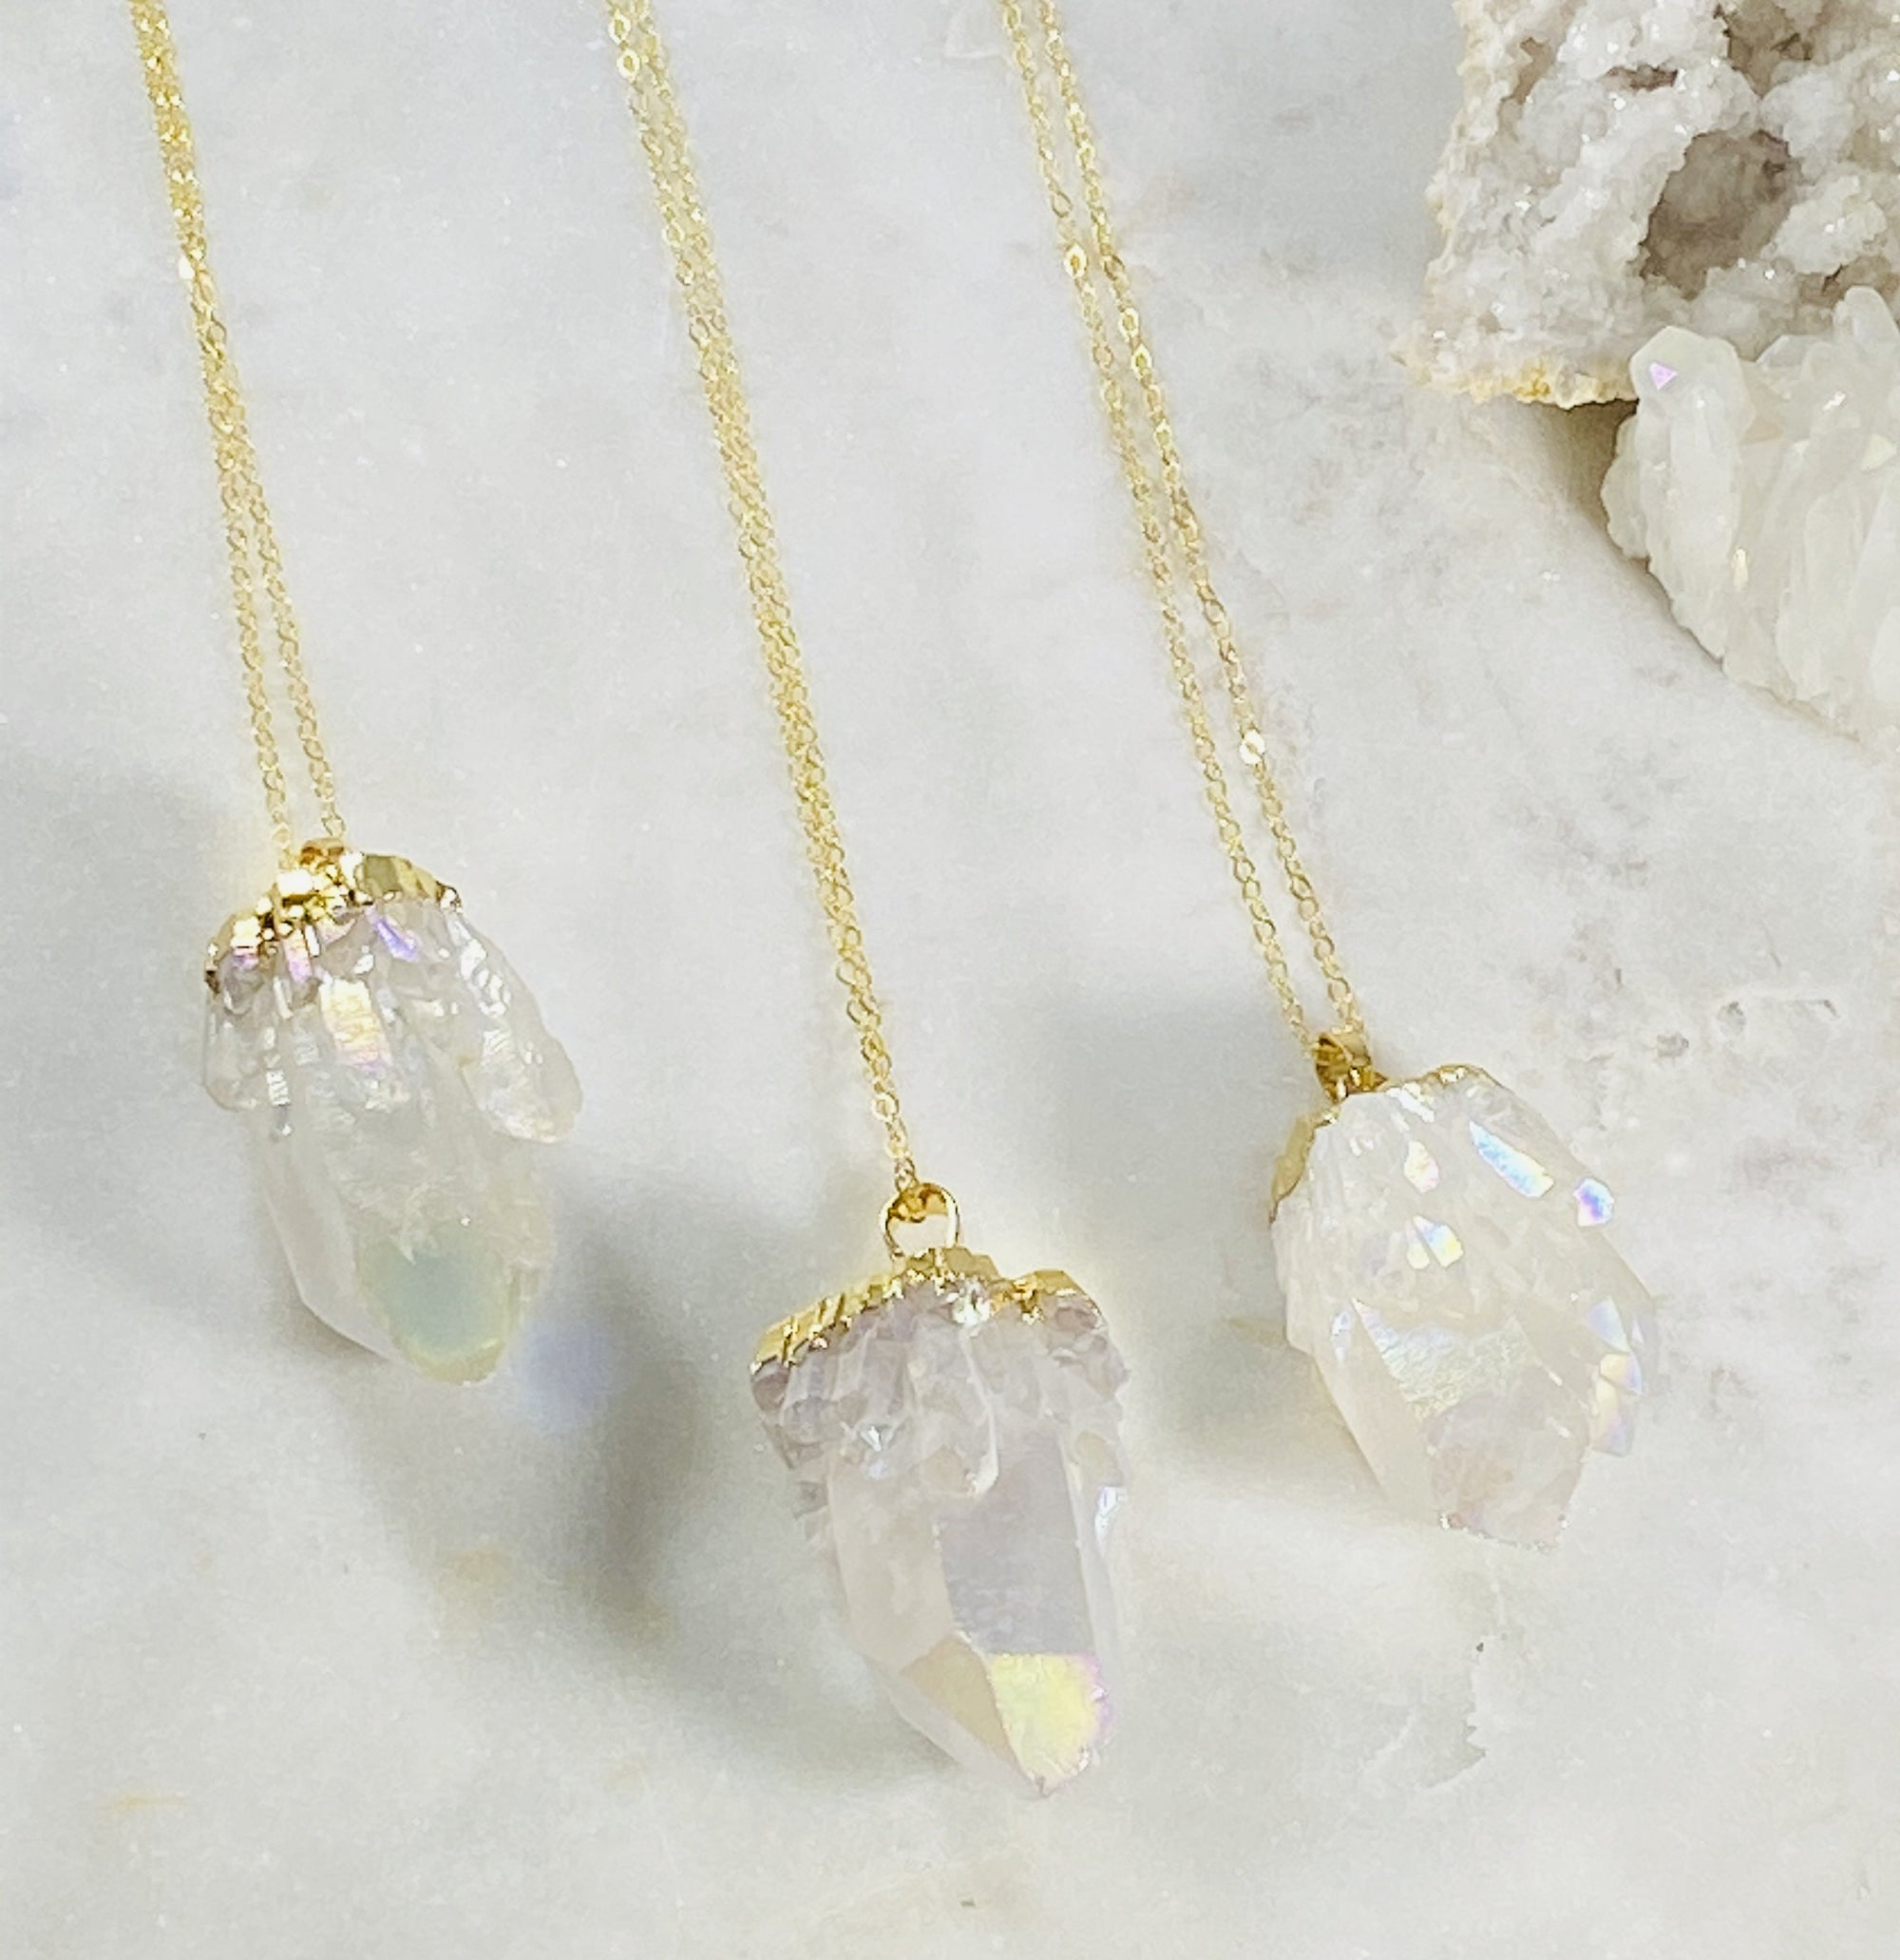 High vibe angel aura quartz necklace for supporting the crown chakra